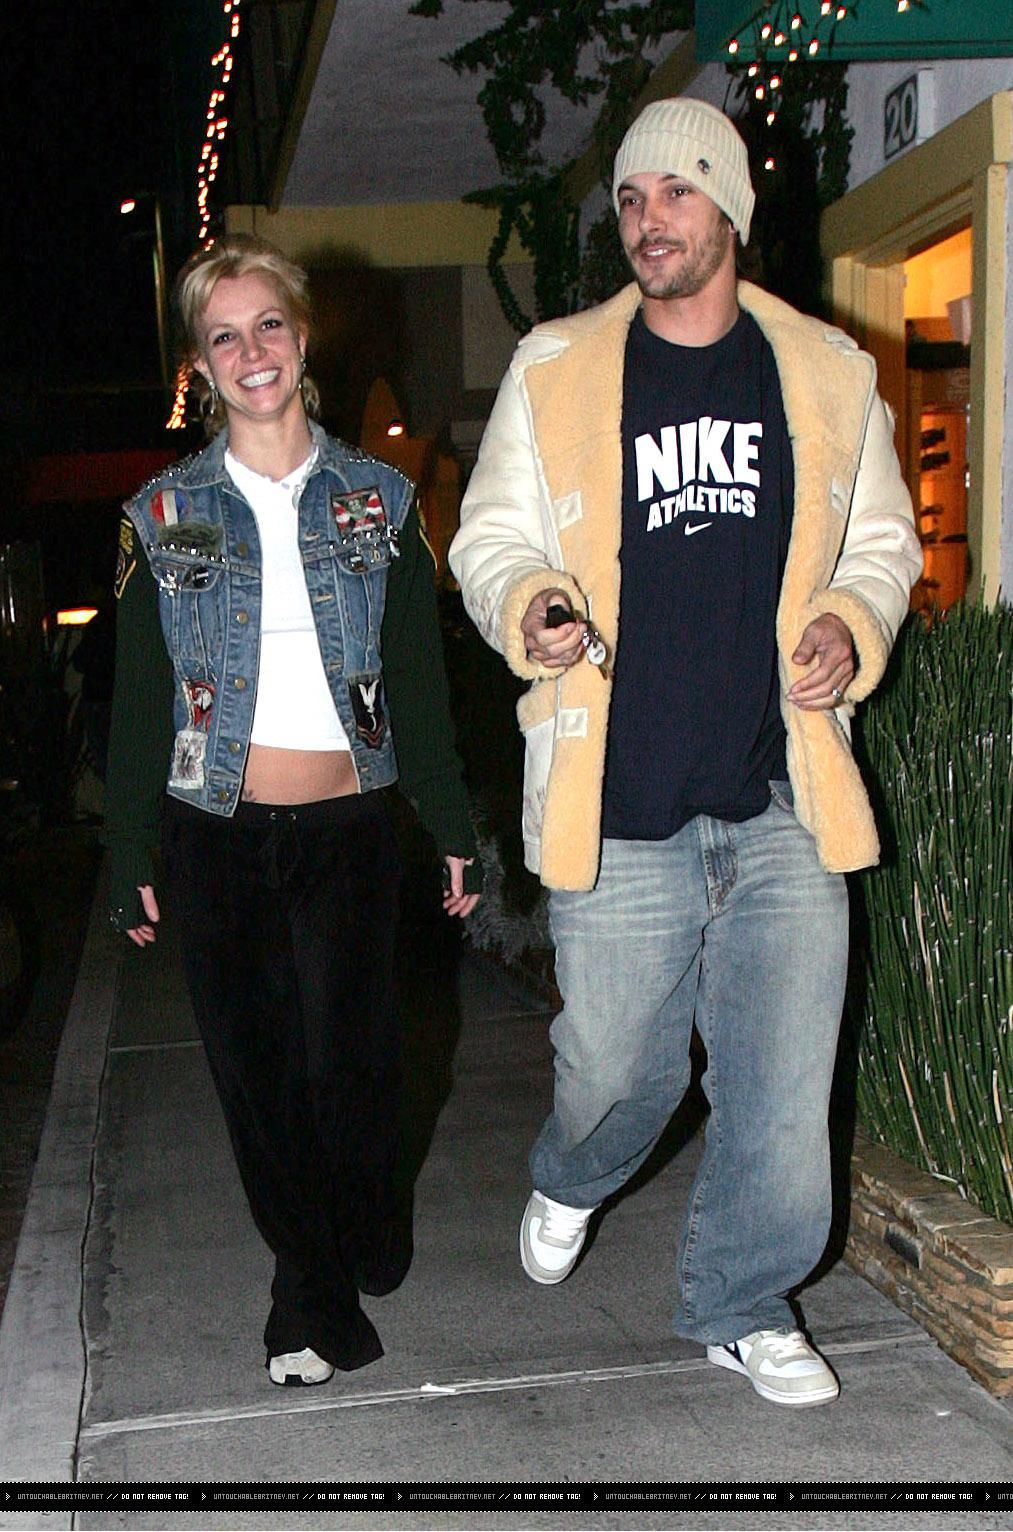 Pin on Britney Spears [2004-2007]